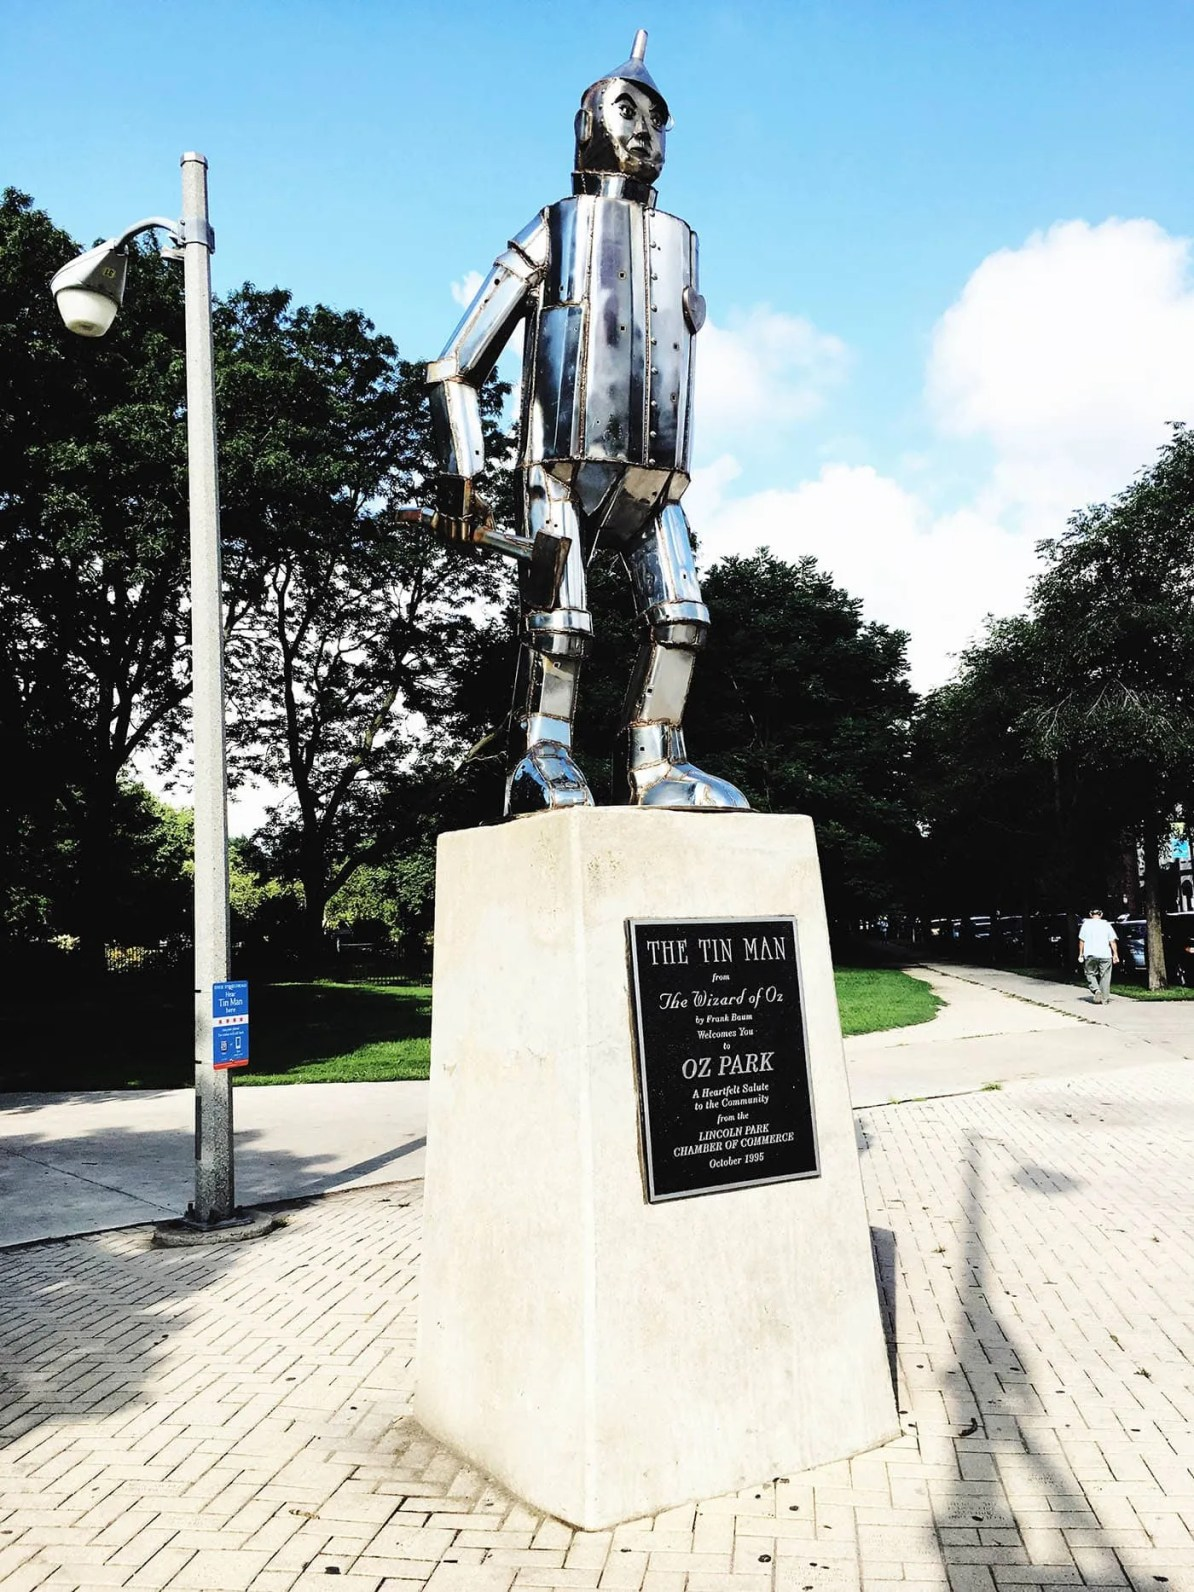 The Tin Man statue at Oz Park in Chicago, Illinois - a Wizard of Oz themed Park.